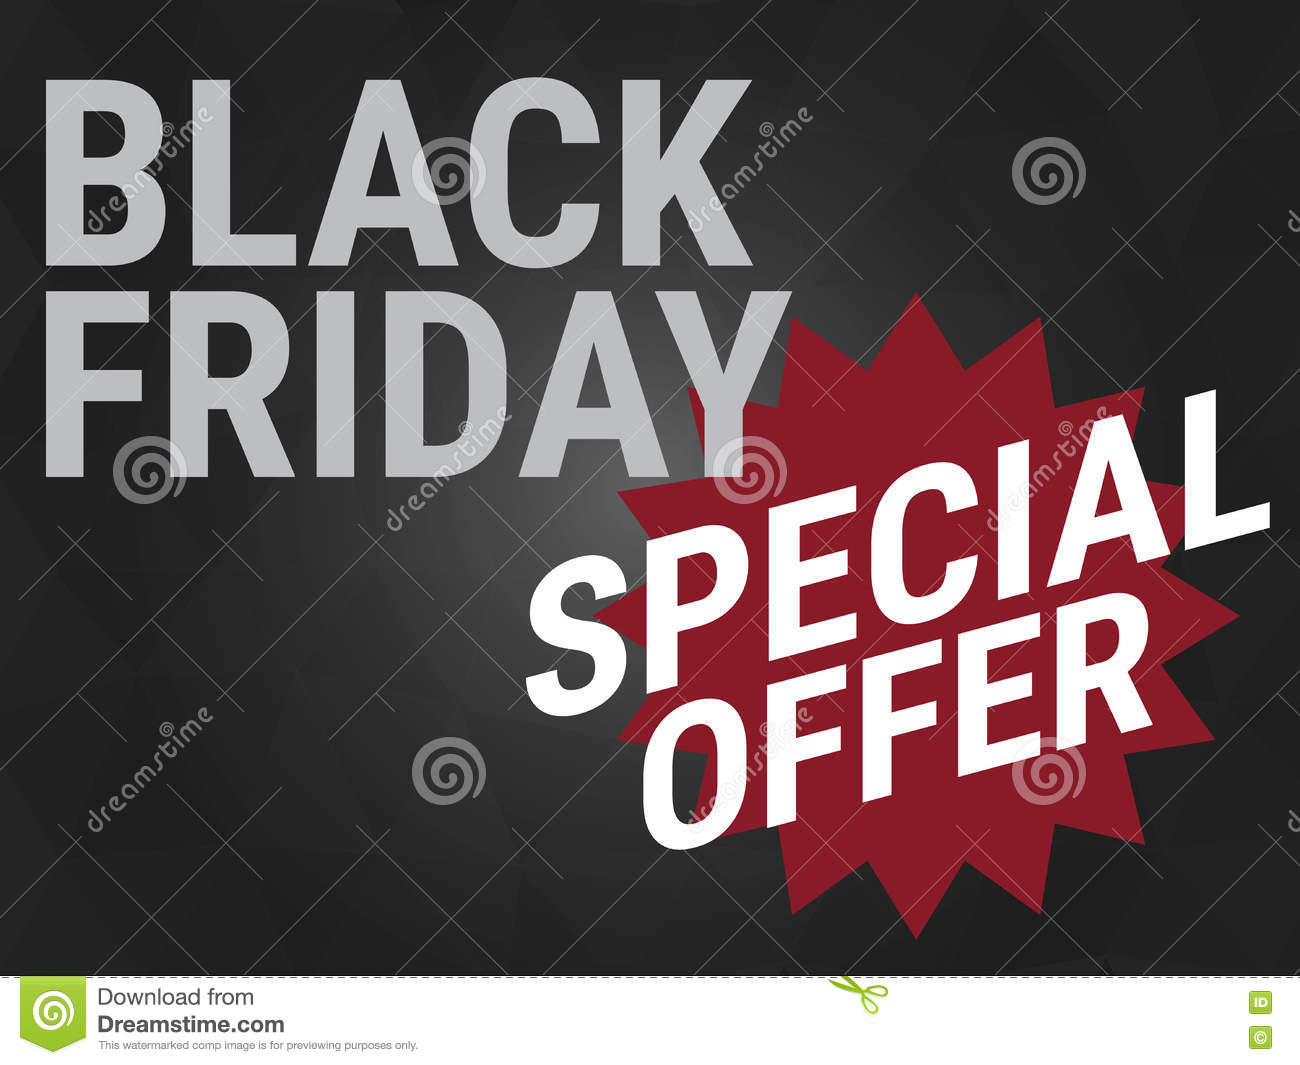 Black Friday Specials Black Friday Special Offer Wording On Black Background Stock